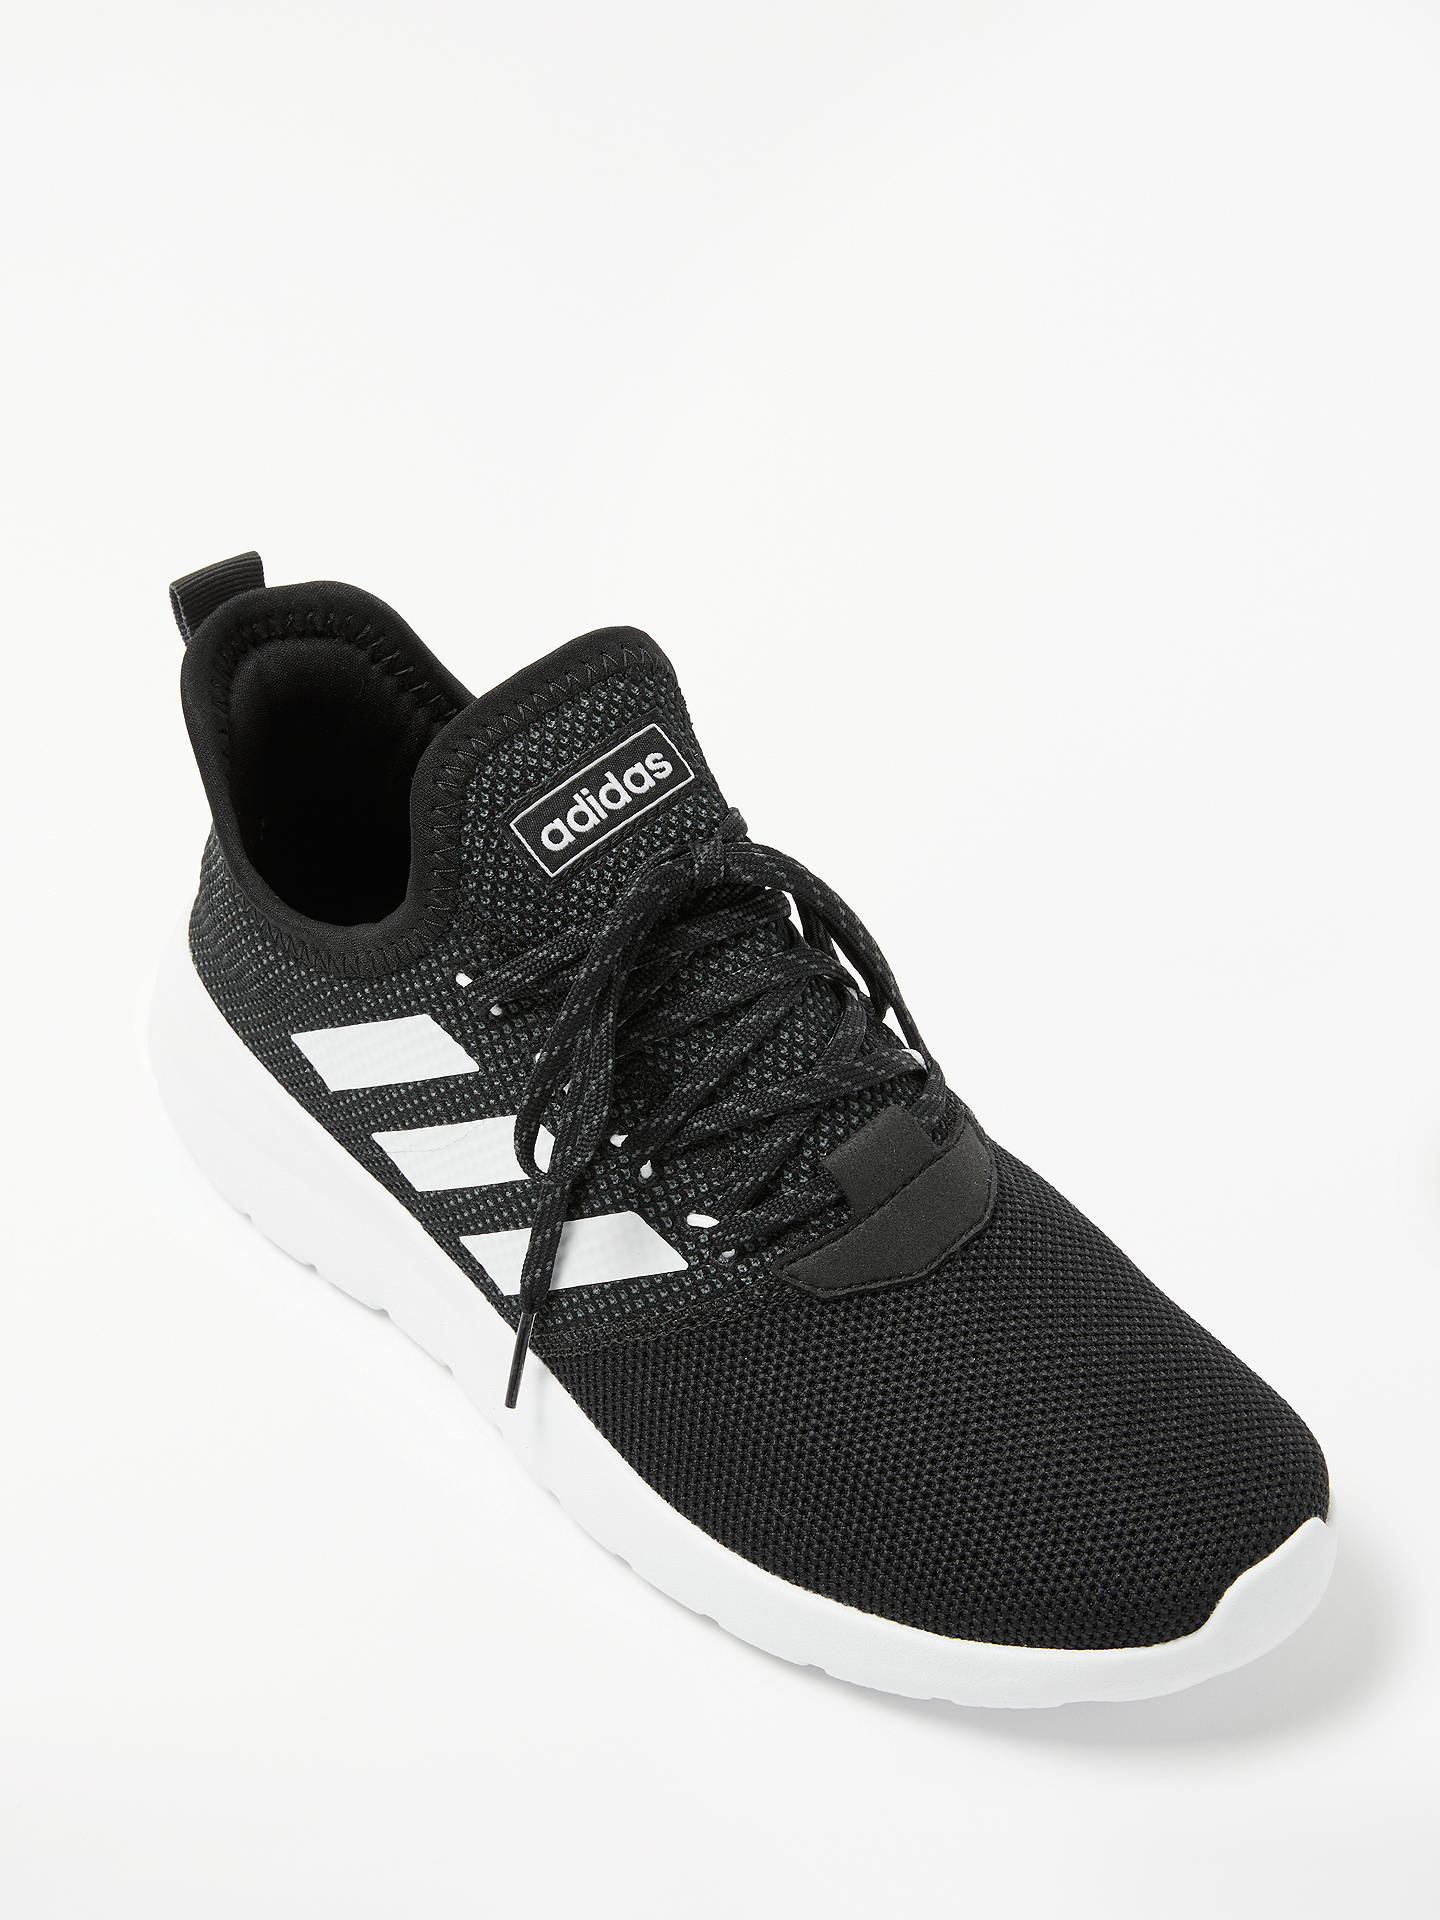 9898bbcbc2c ... Buy adidas Lite Racer Reborn Men s Shoes